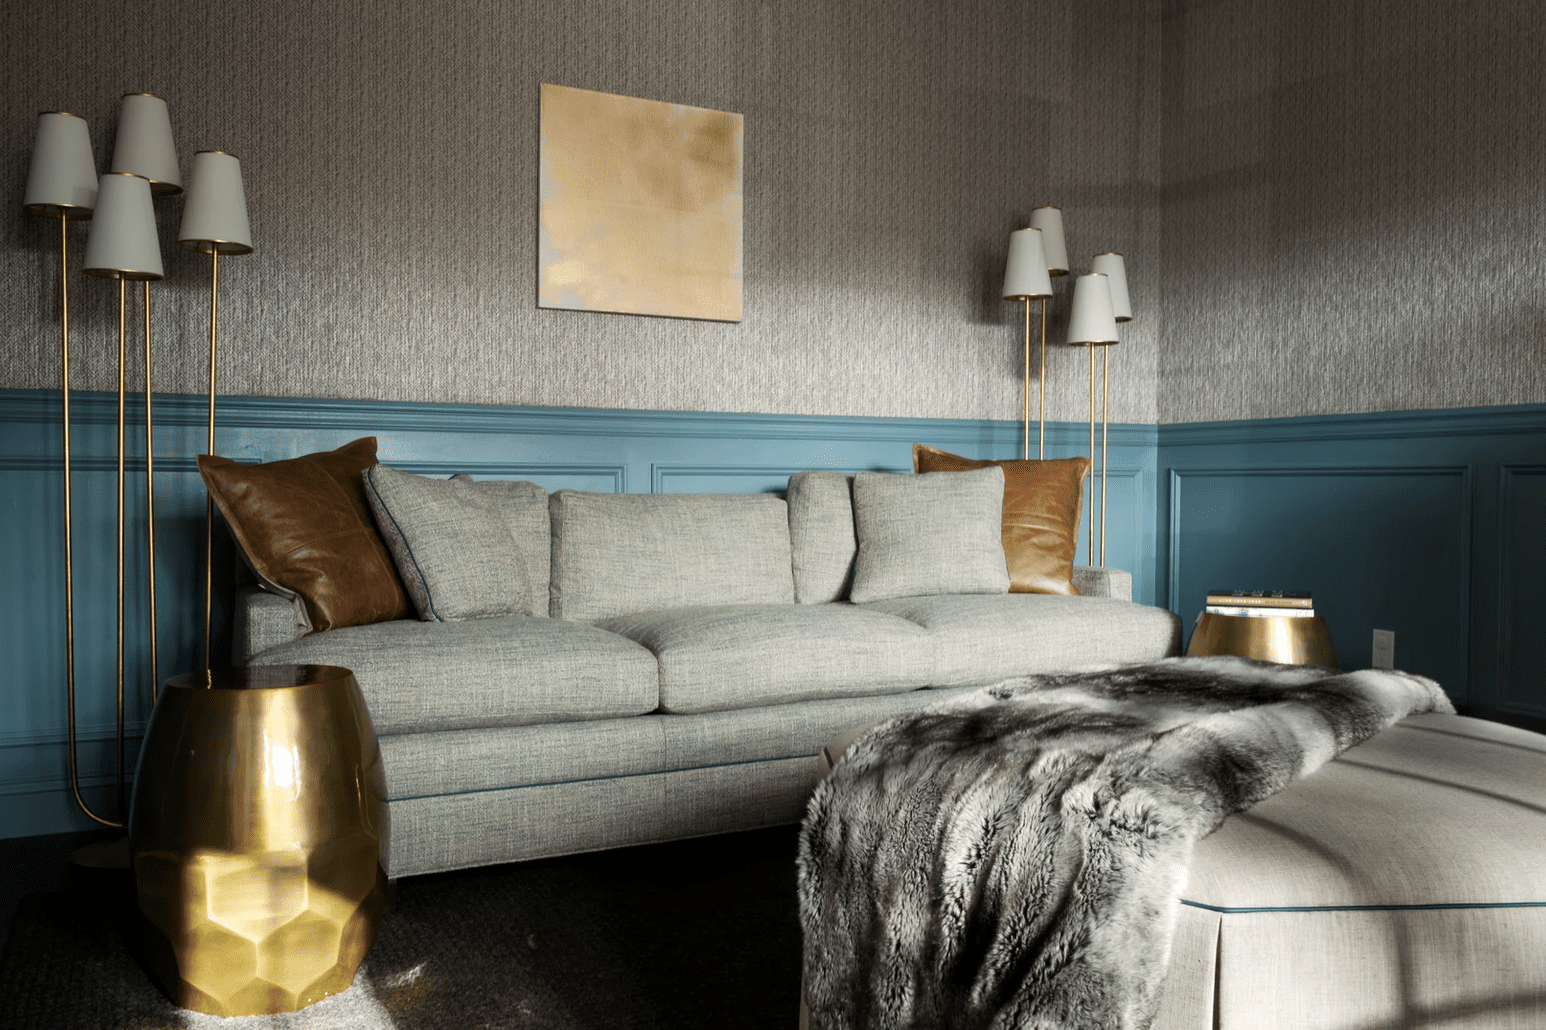 best living room ideas - blue wainscoting and wallpaper